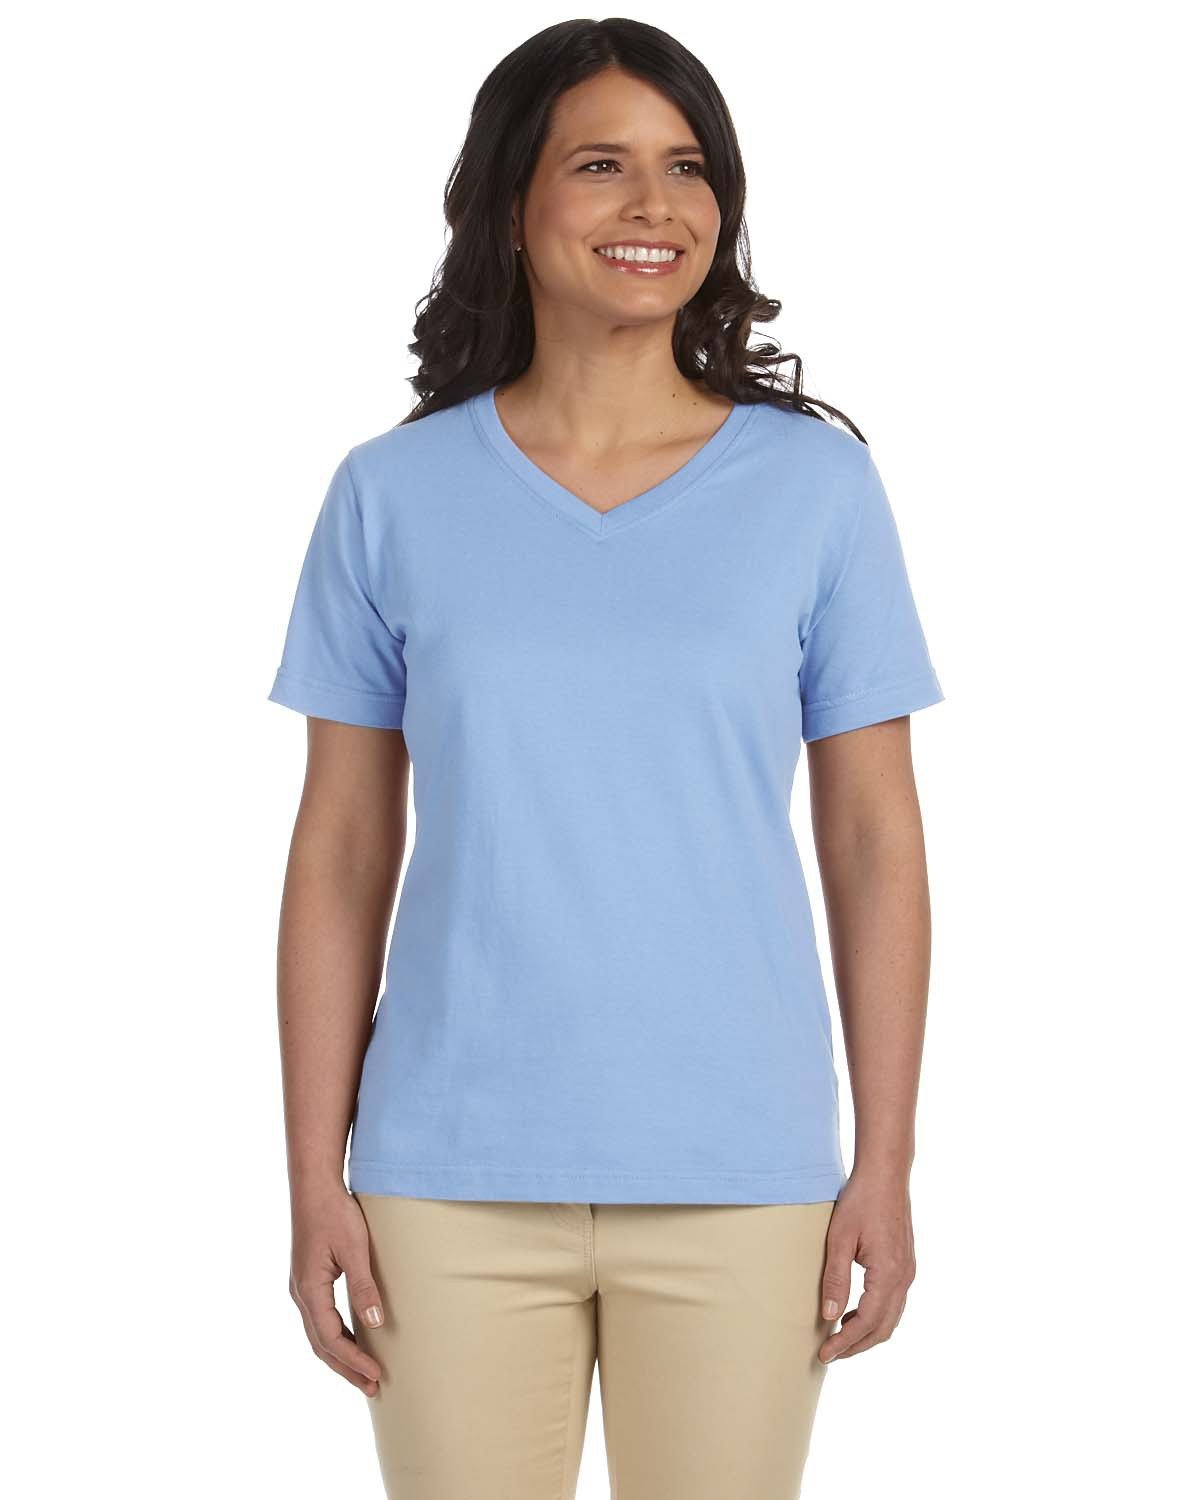 LAT Ladies' Premium Jersey V-Neck T-Shirt LIGHT BLUE